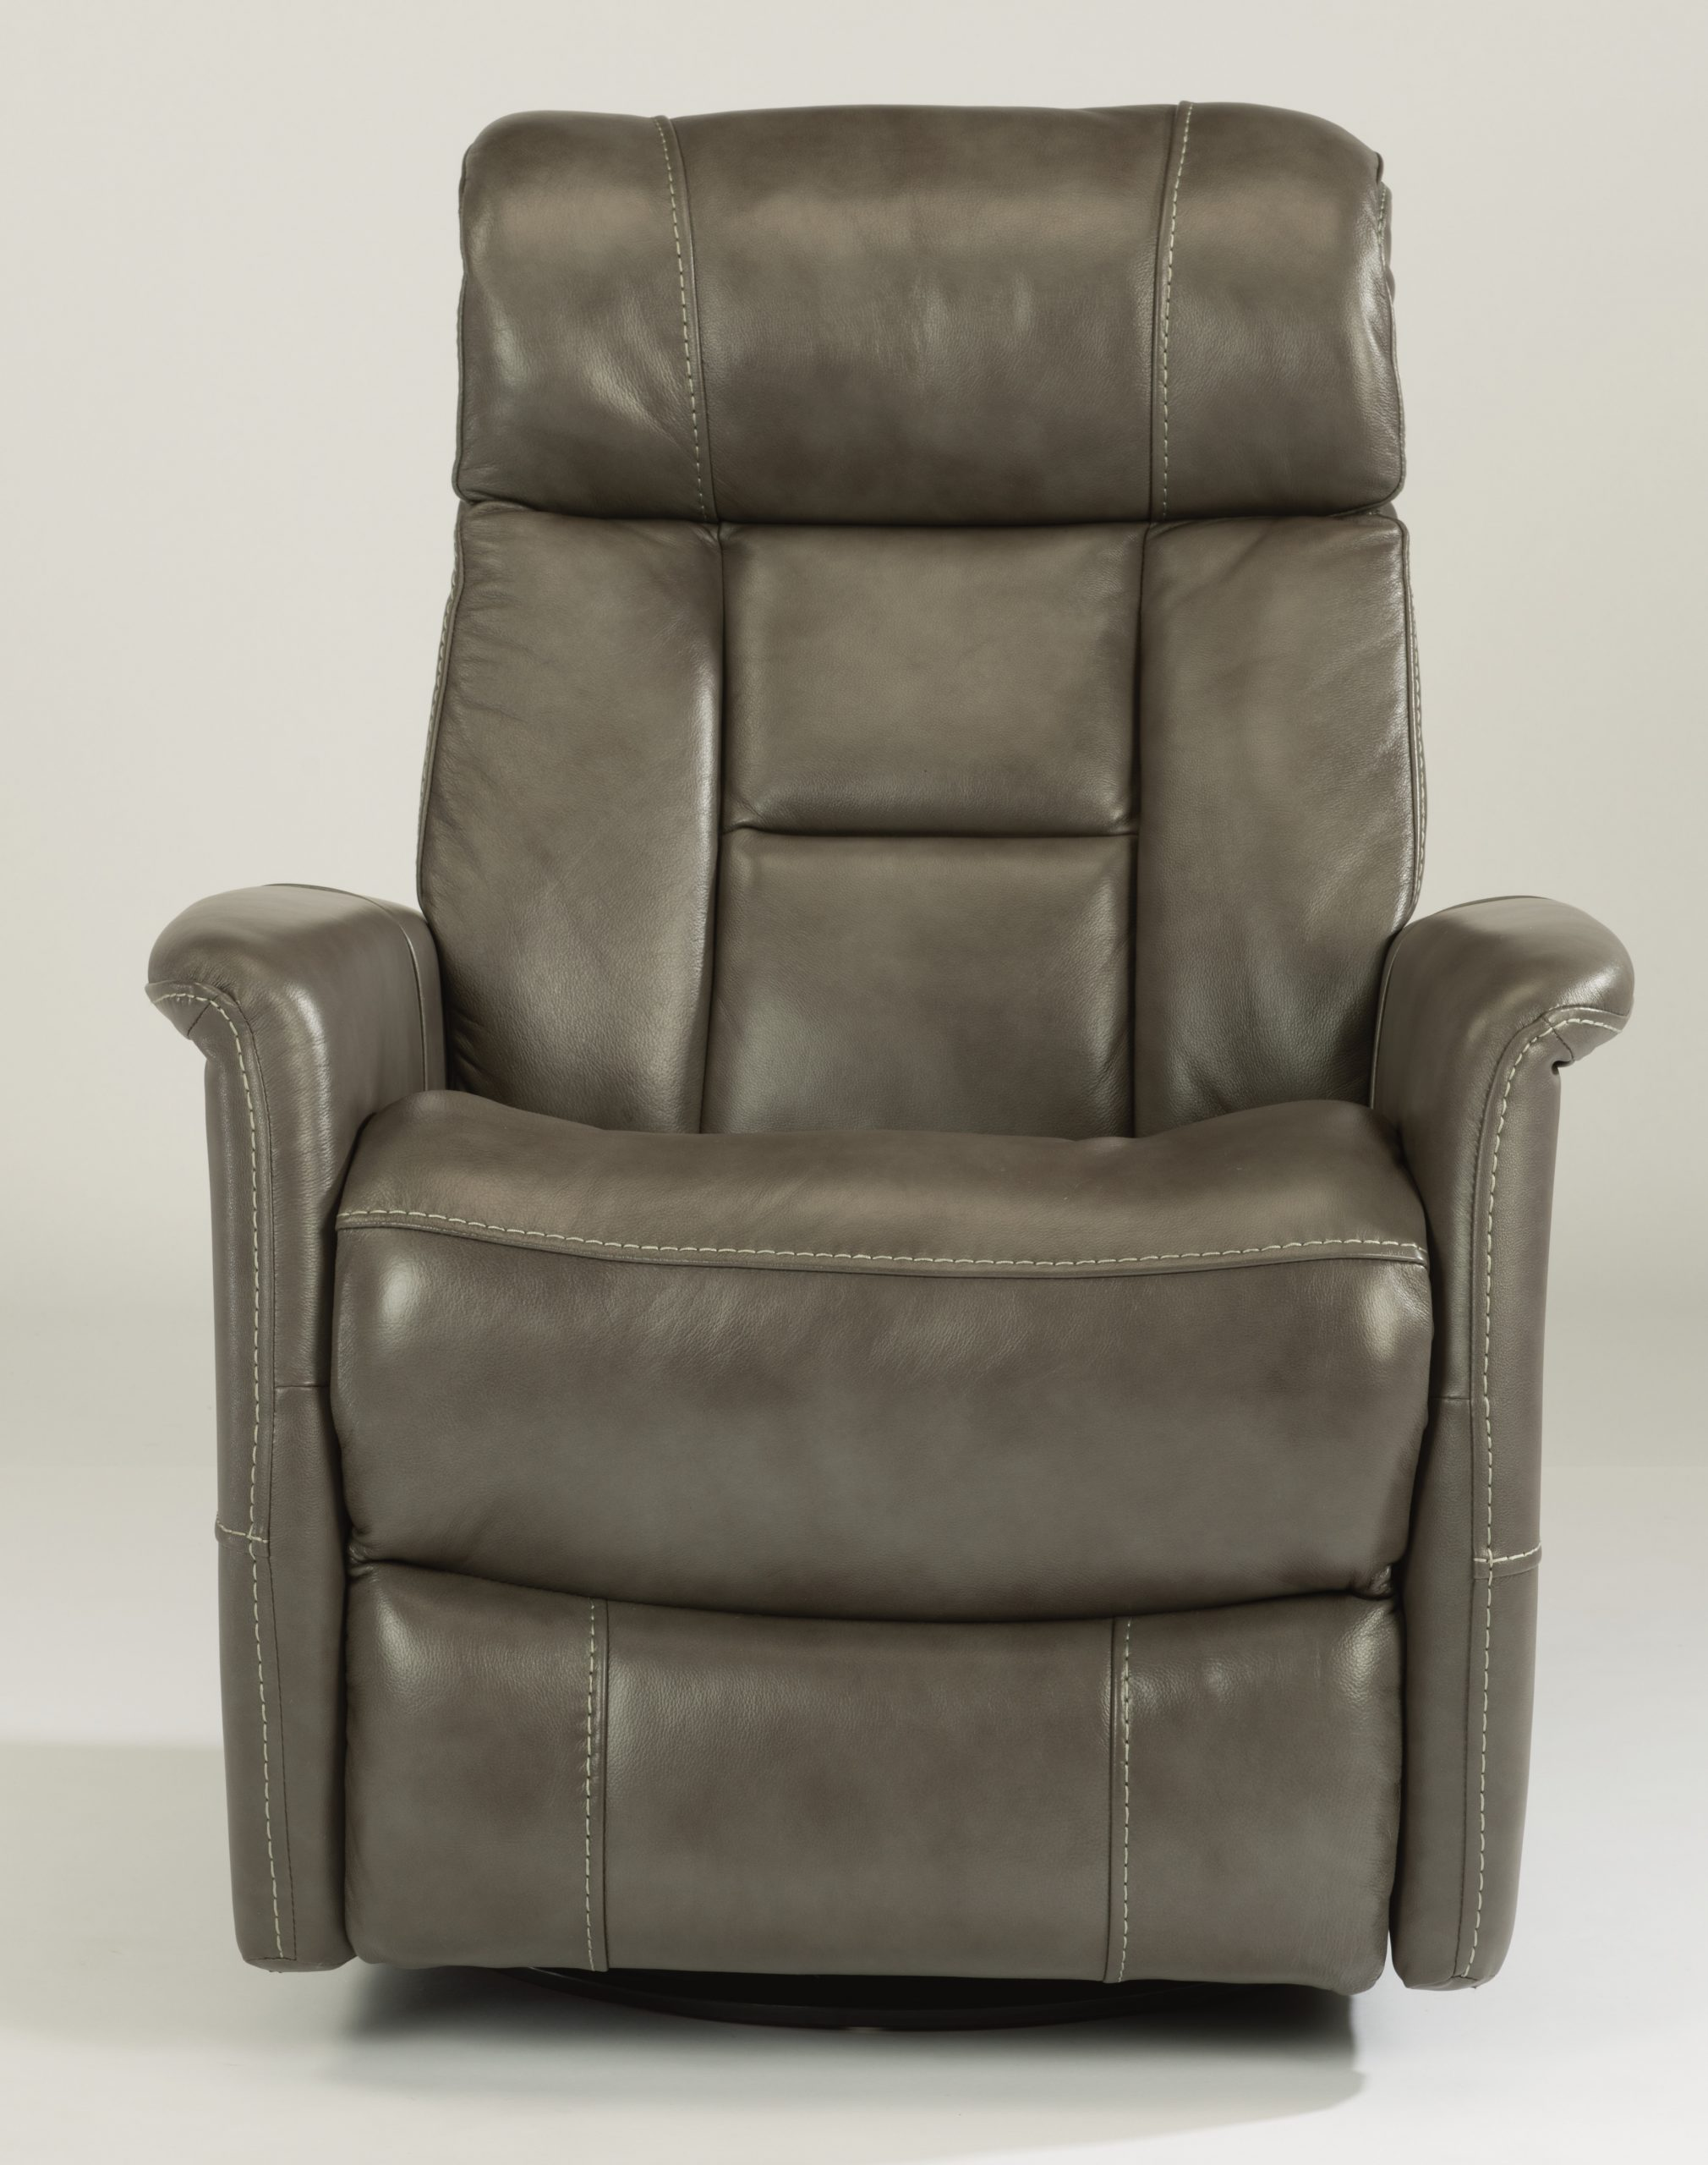 Flexsteel Hart Power Swivel Glider with Battery Recliner (Recliners)